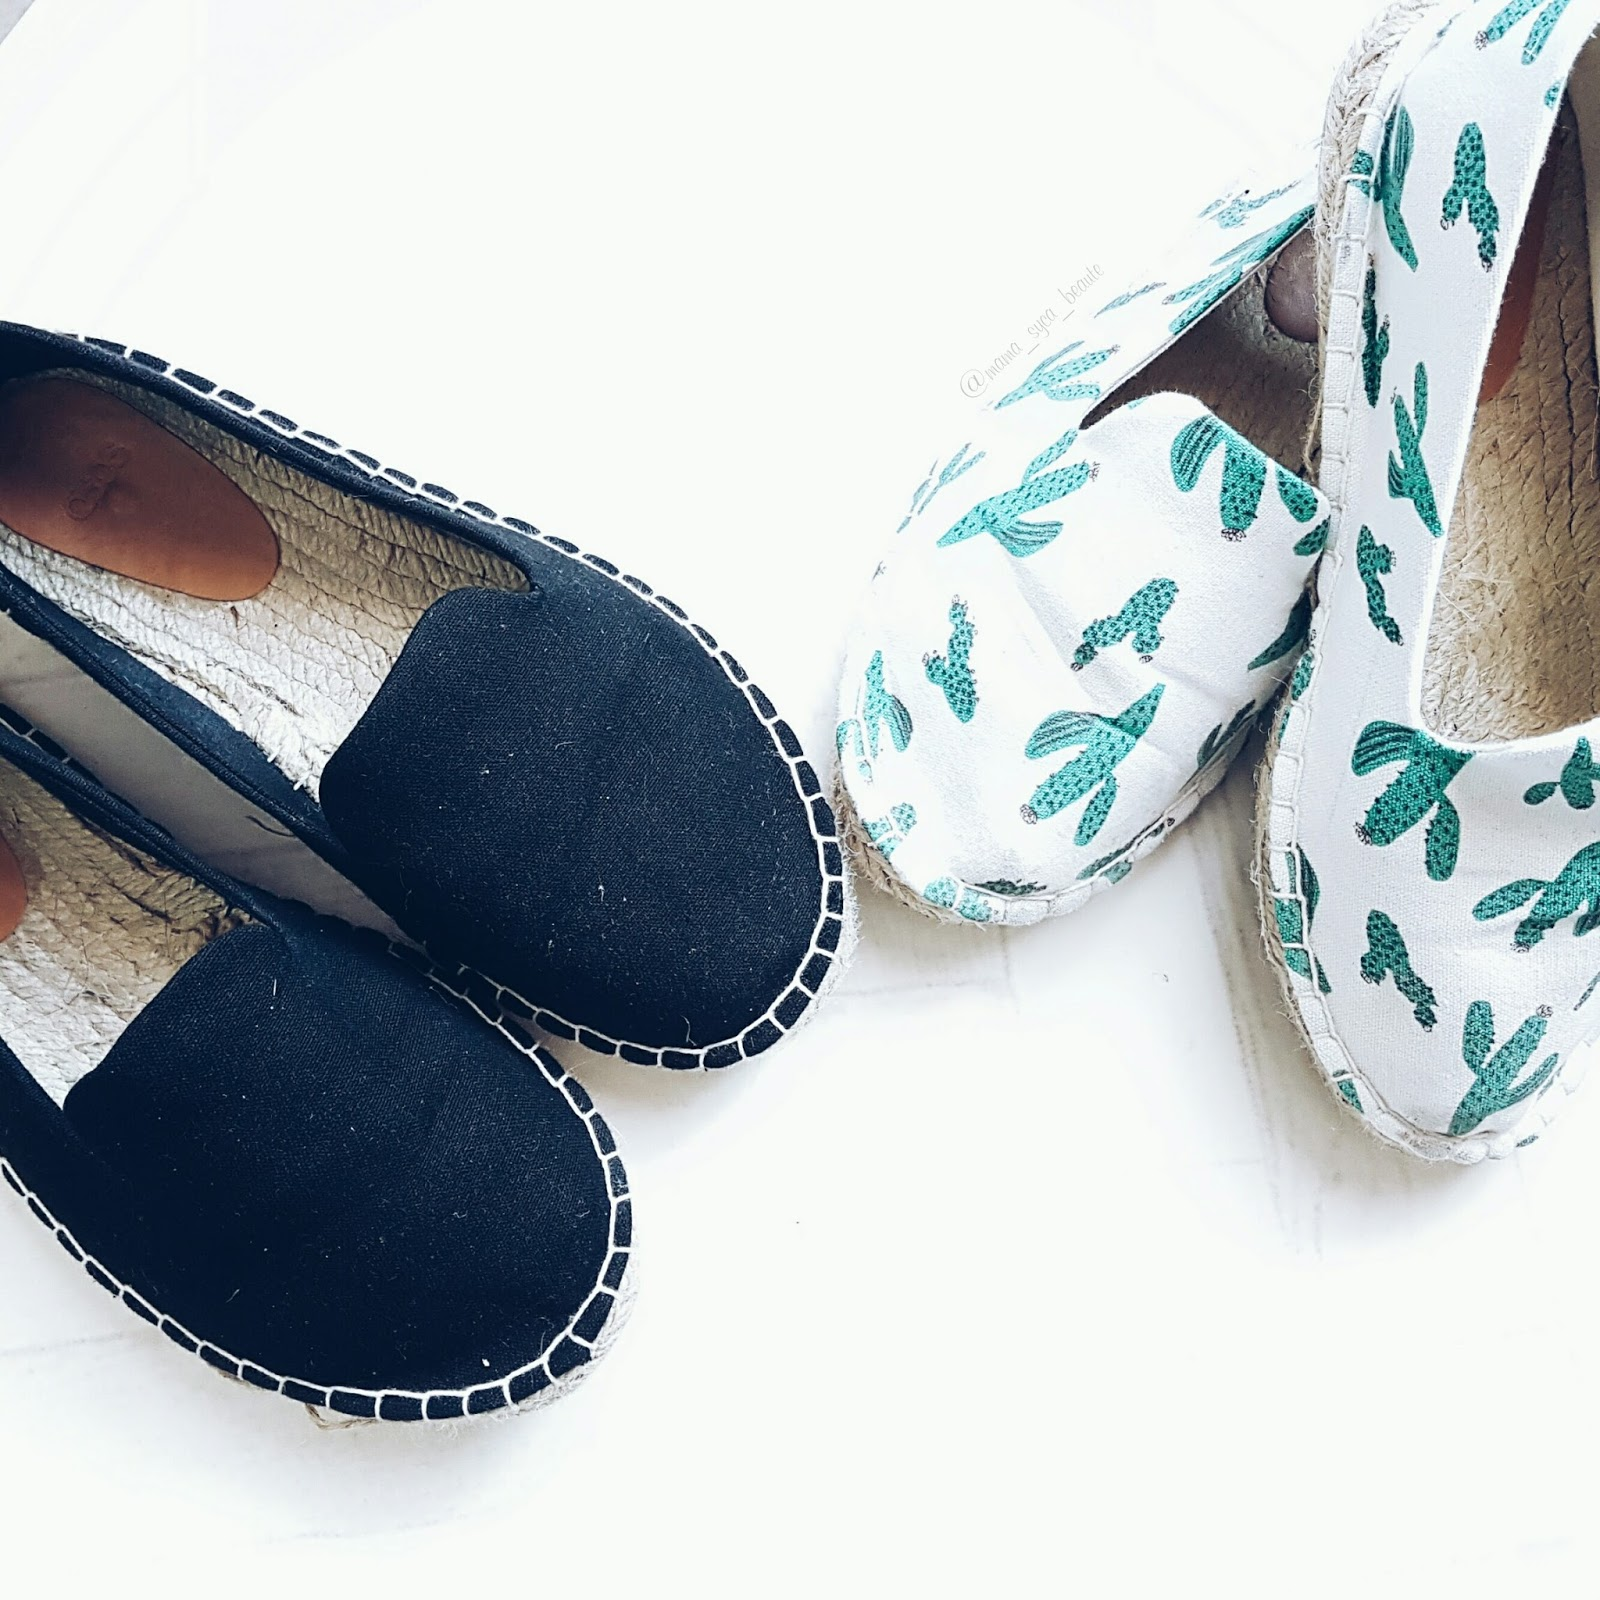 selection_chaussures_espadrilles_wide_fit_pieds_larges_asos_look_mama_syca_beaute